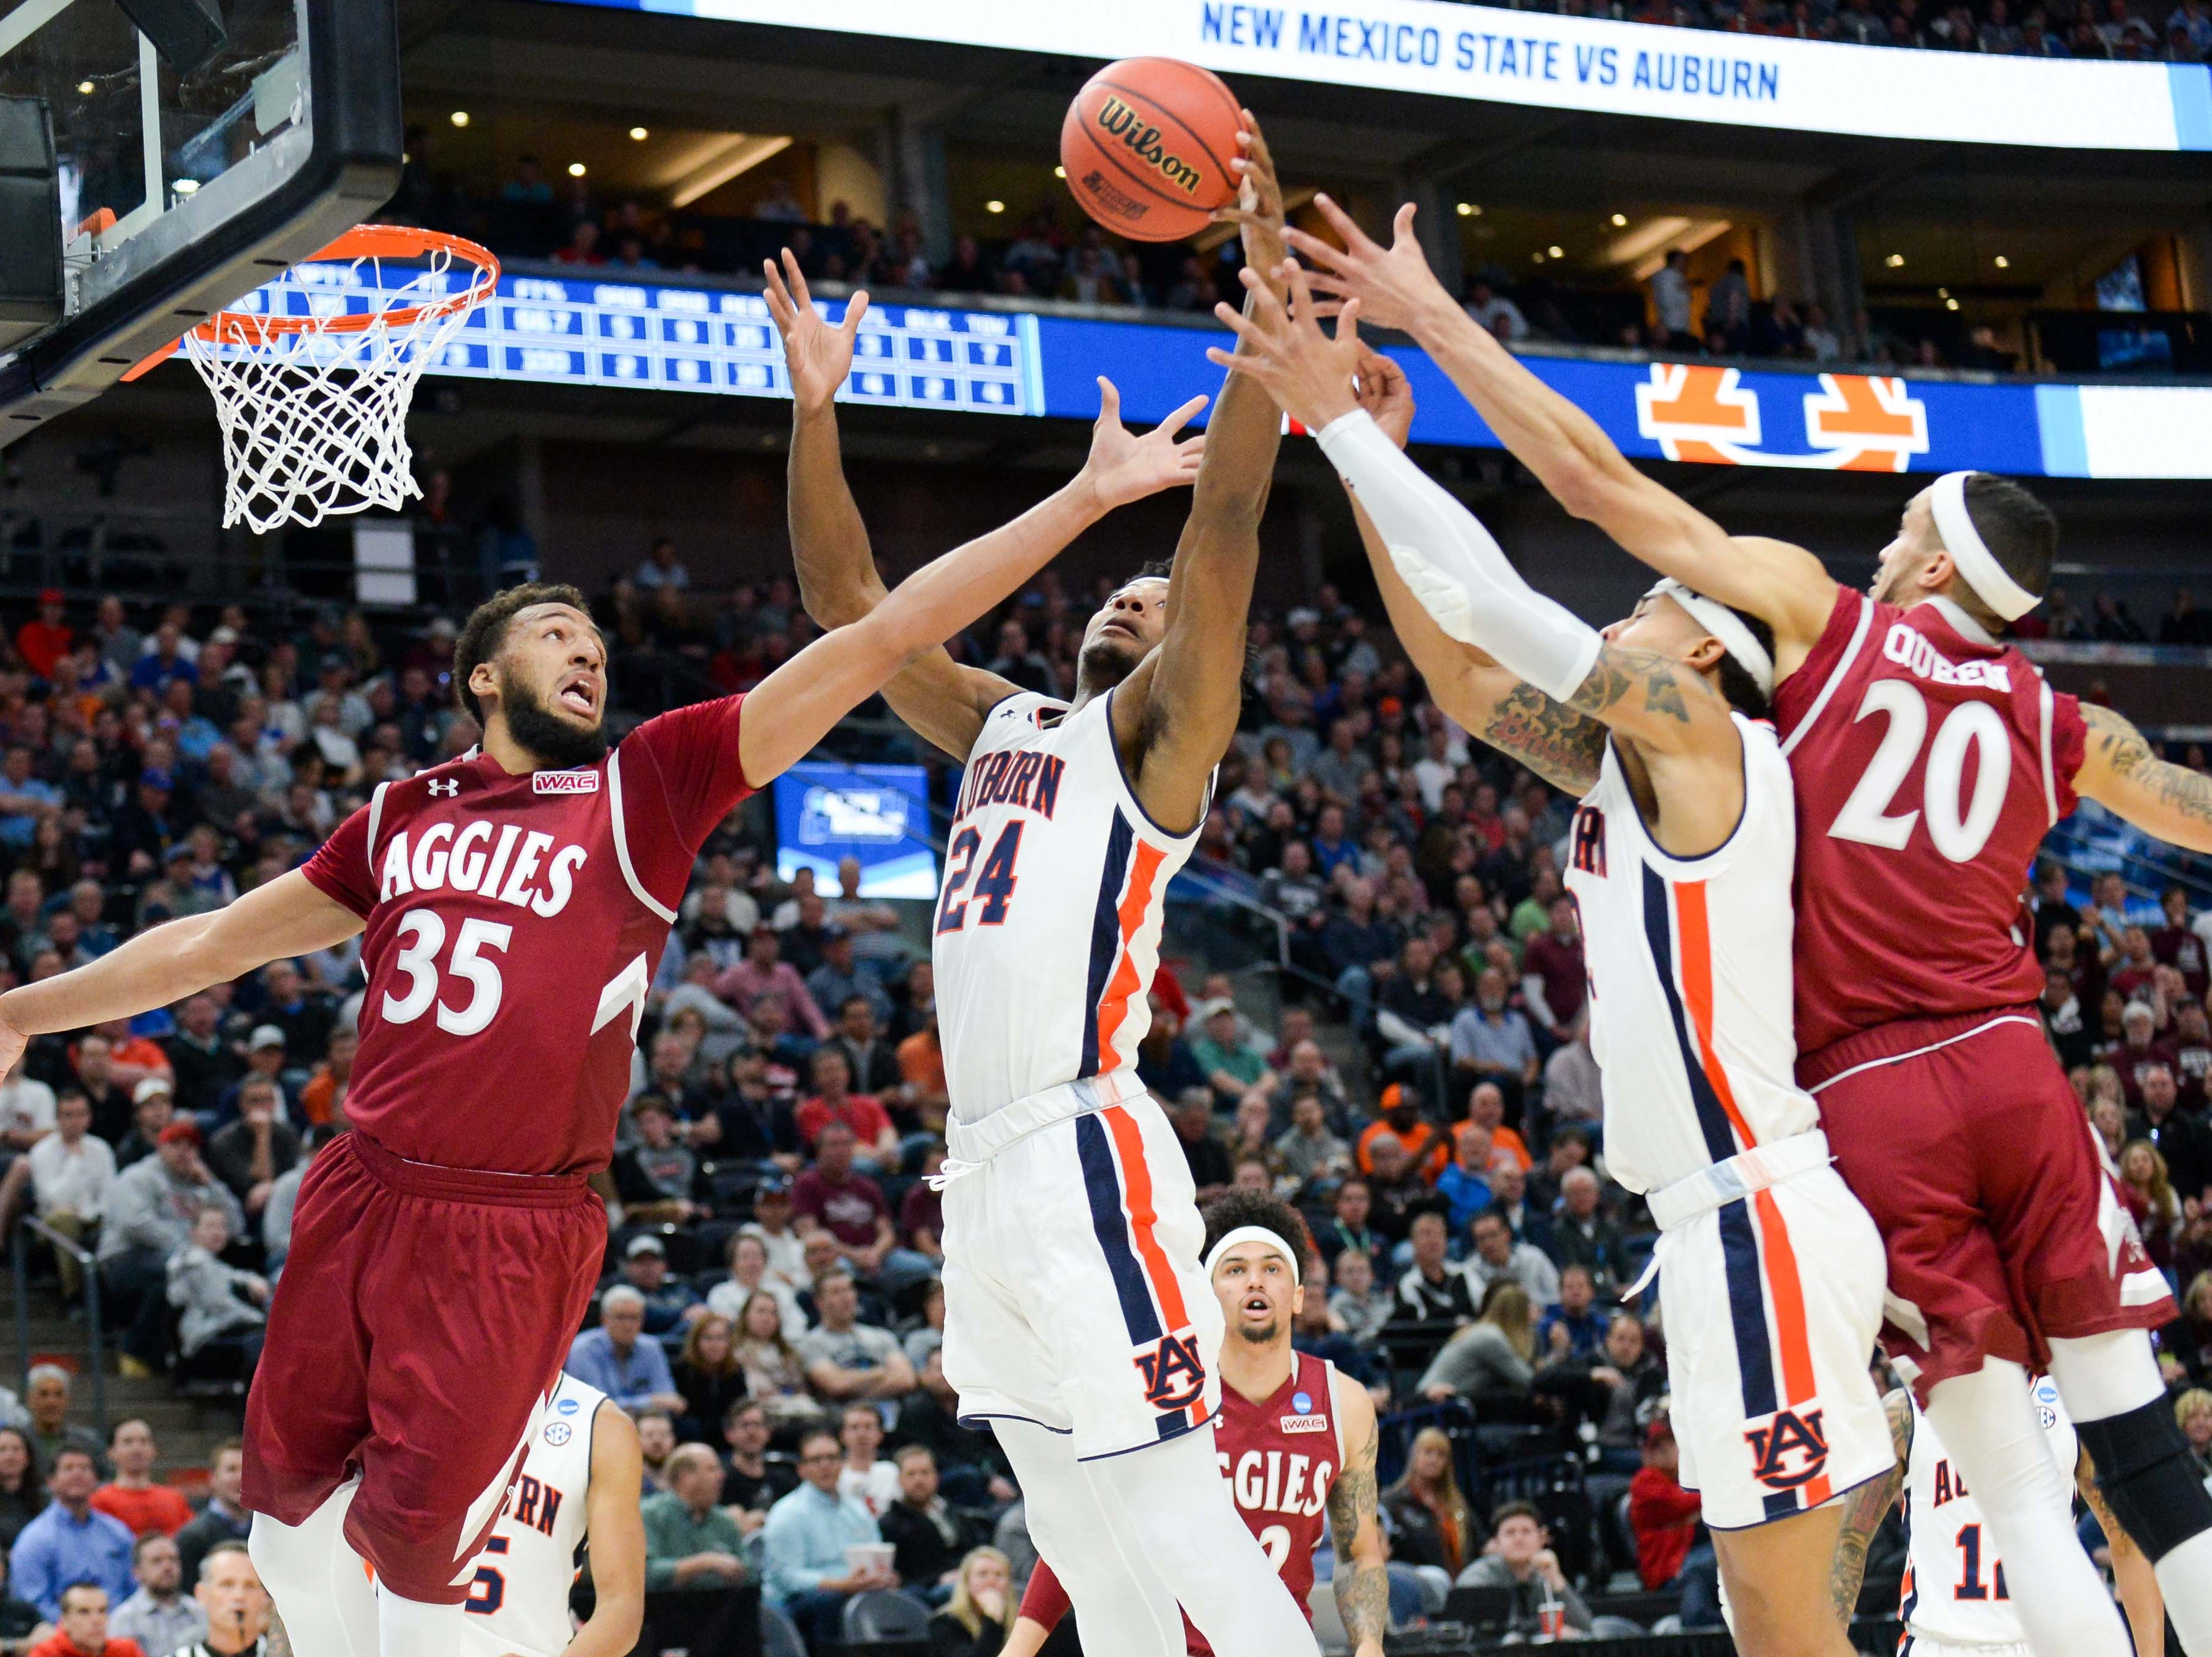 Mar 21, 2019; Salt Lake City, UT, USA; From left to right, New Mexico State Aggies forward Johnny McCants (35), Auburn Tigers forward Anfernee McLemore (24), guard Bryce Brown (2), and New Mexico State Aggies guard Trevelin Queen (20) reach for the ball during the first half in the first round of the 2019 NCAA Tournament at Vivint Smart Home Arena. Mandatory Credit: Gary A. Vasquez-USA TODAY Sports